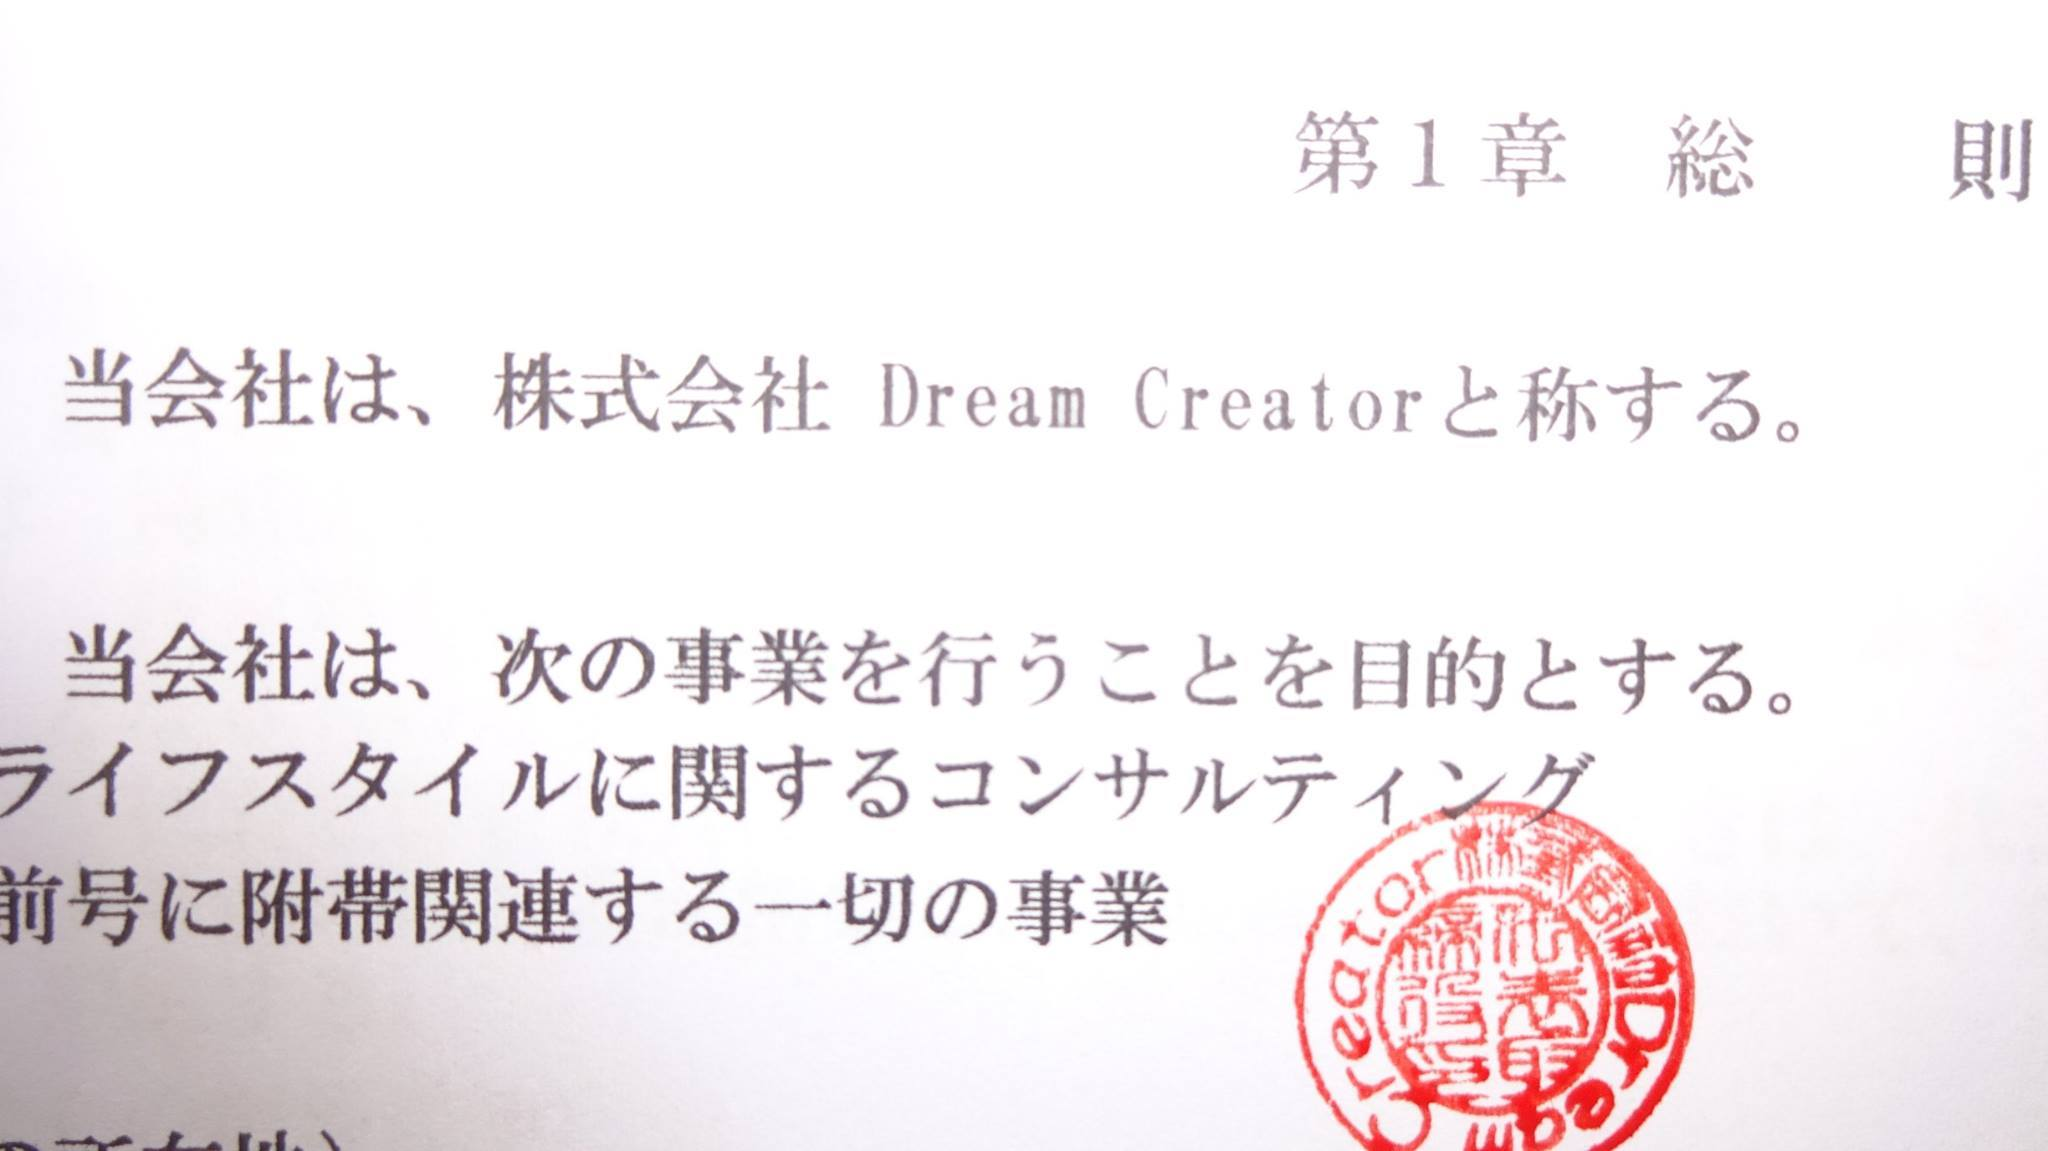 株式会社 Dream Creator